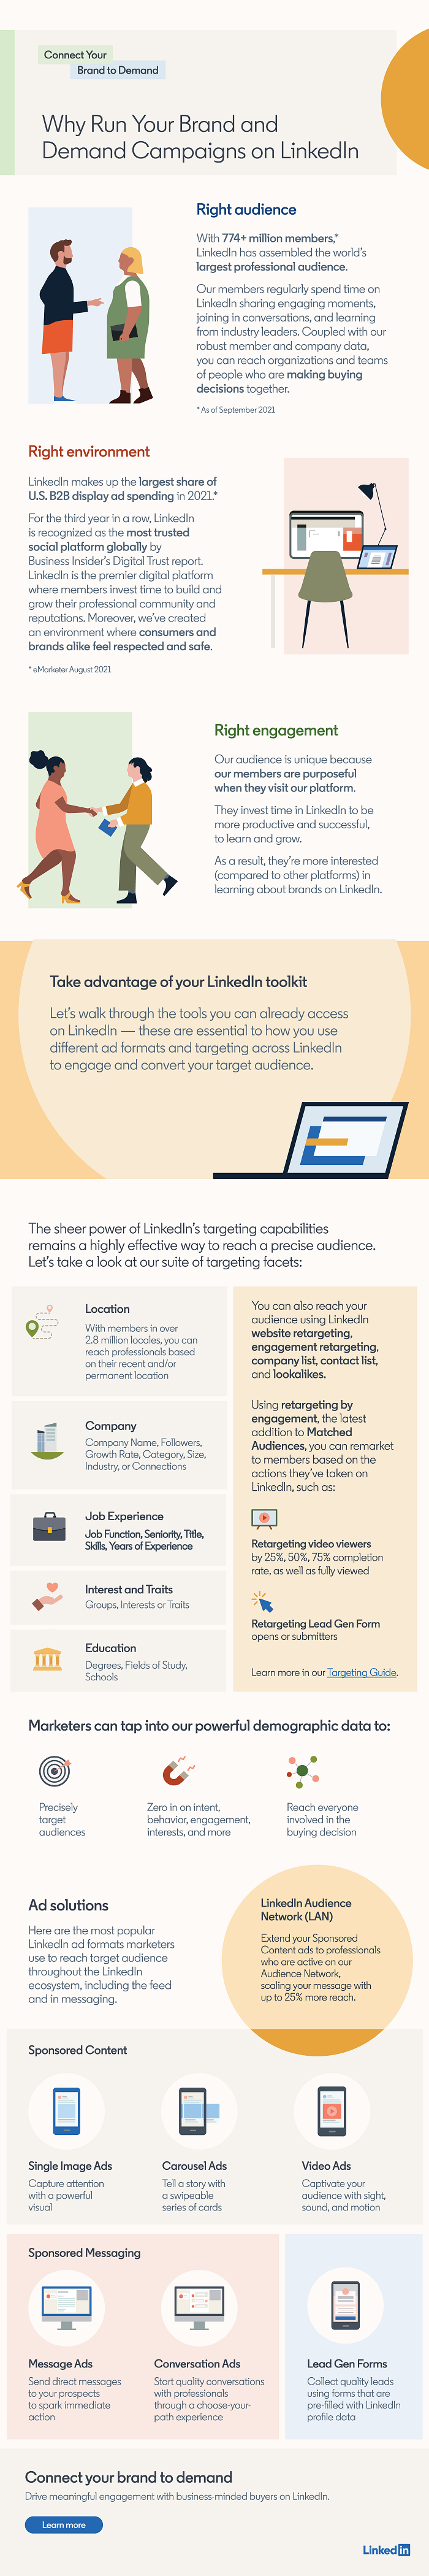 LinkedIn ad overview infographic